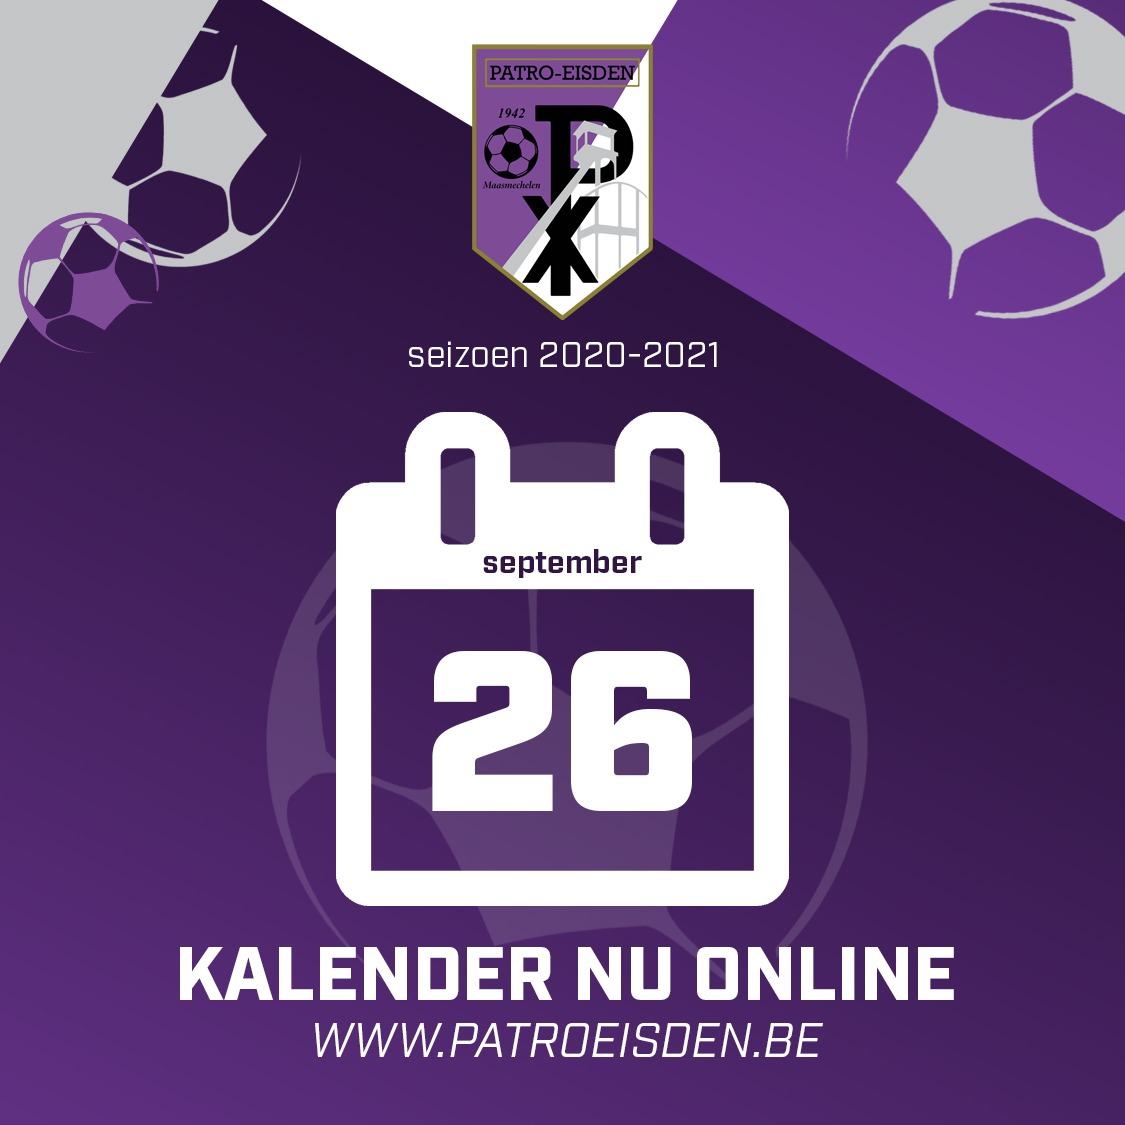 Kalender 1ste nationale 2020-2021 photo